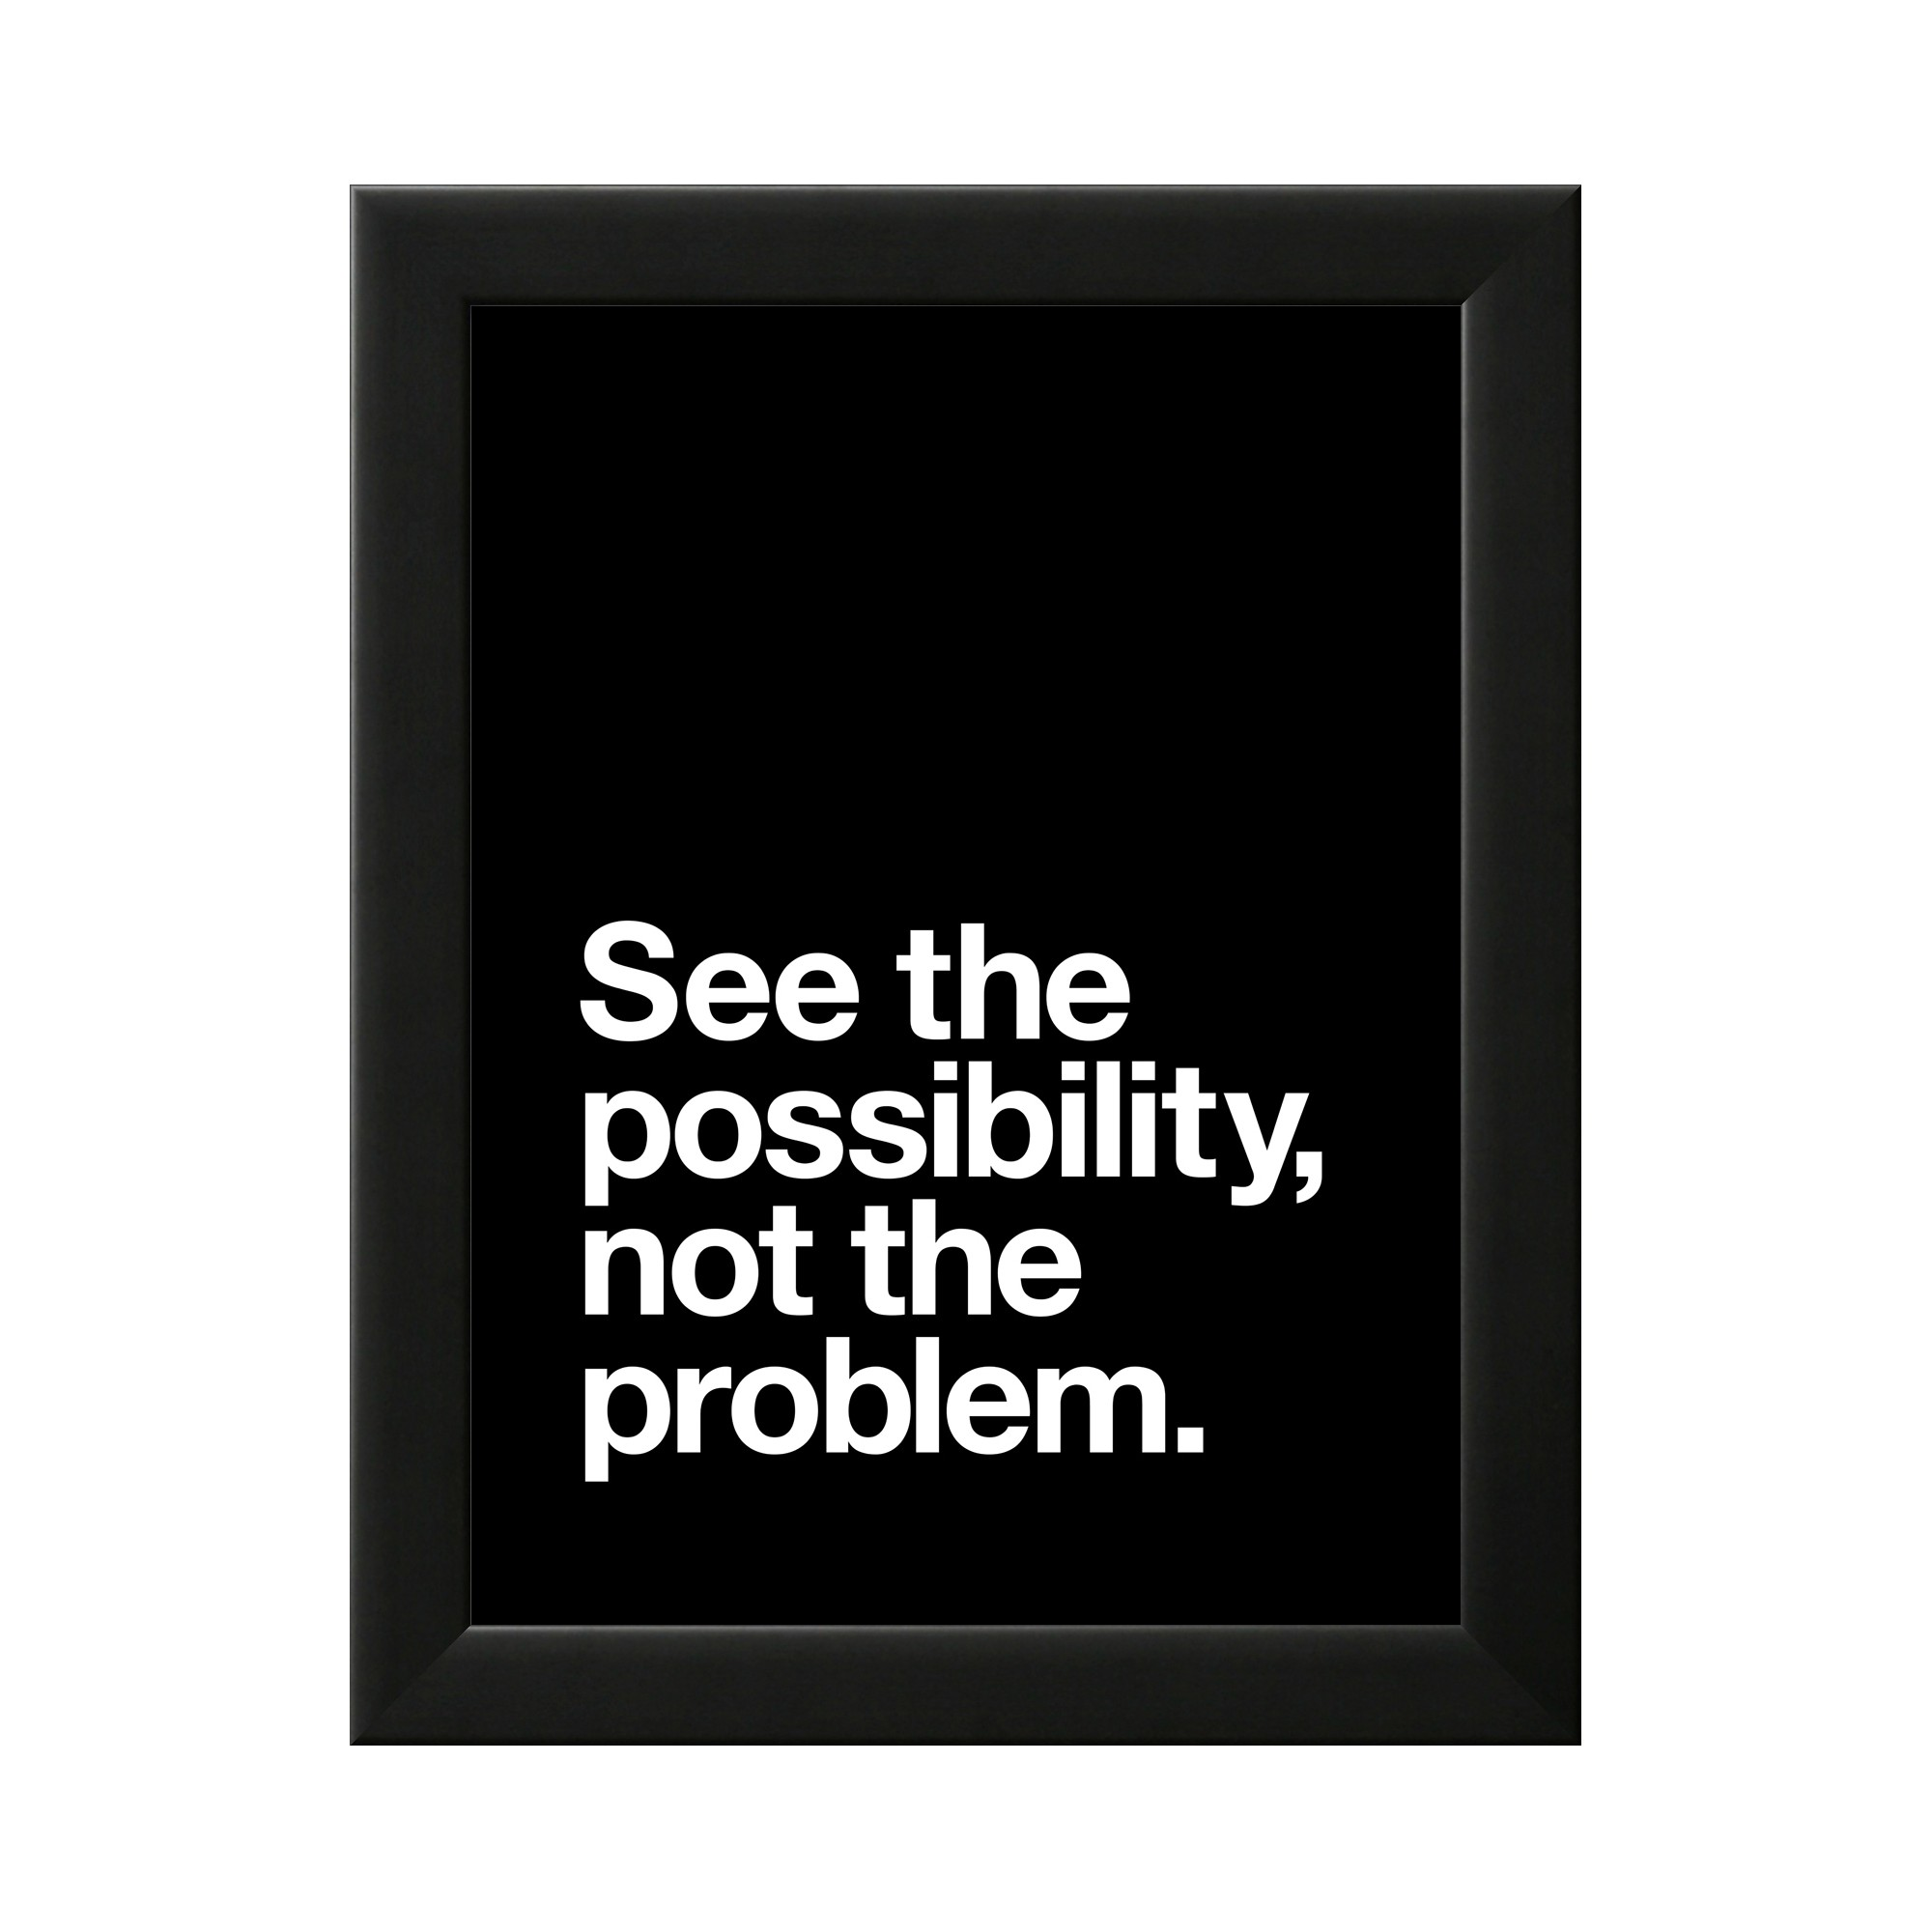 See The Possibility not the Problem Black Wood Framed Art